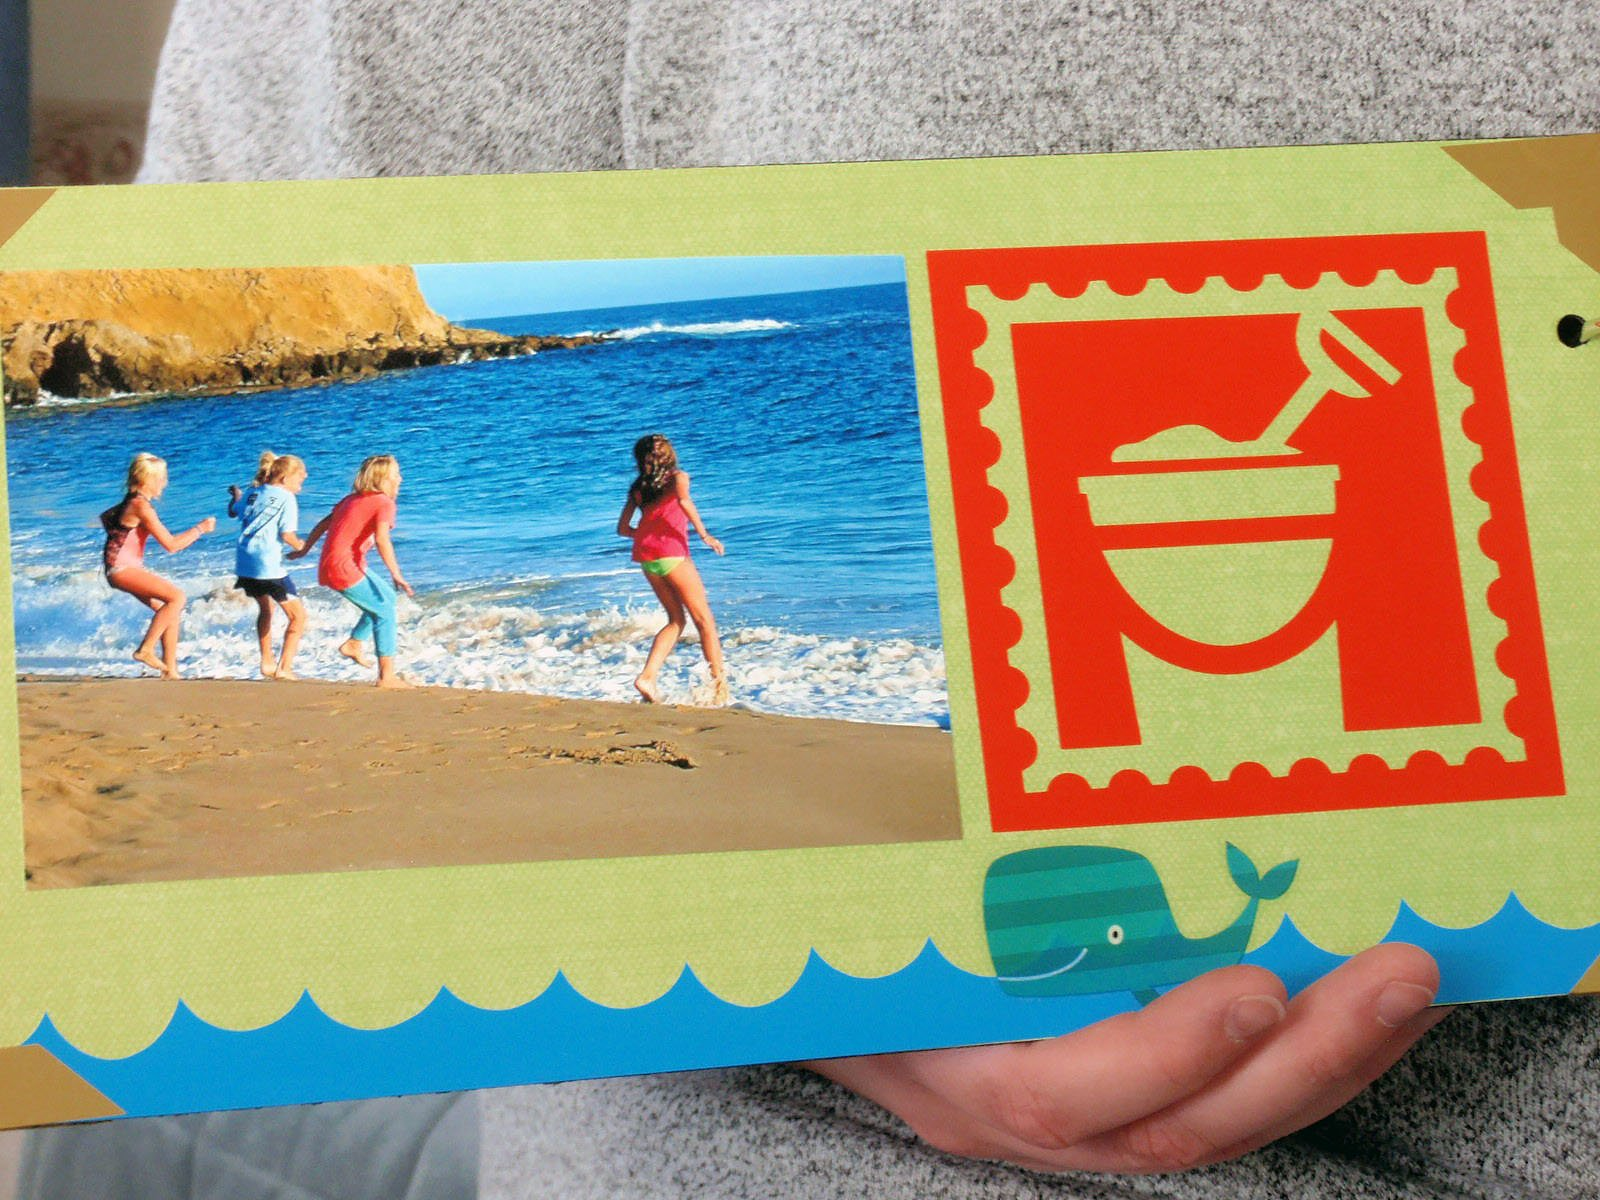 Take Me to the Beach: Cricut Scrapbook Album